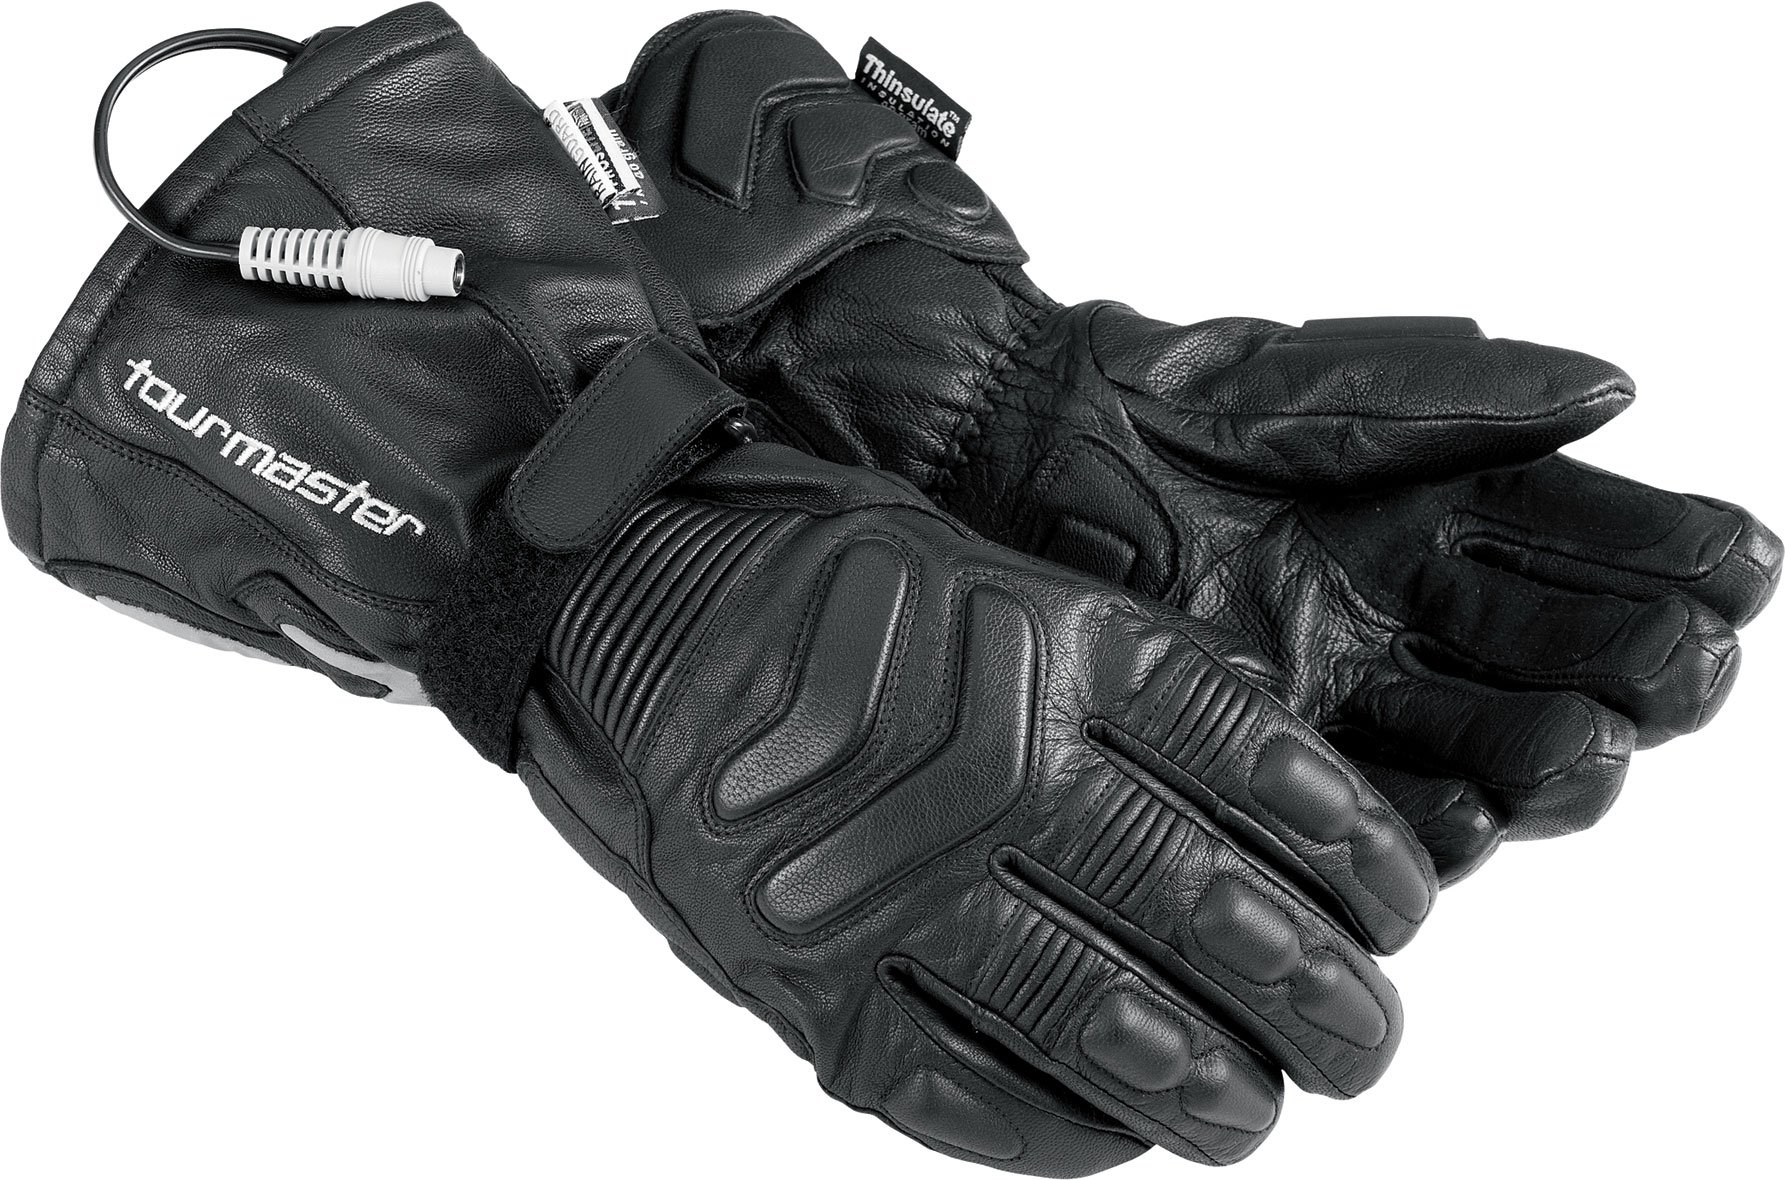 Tour Master Synergy 2.0 Electrically Heated Mens Leather Street Racing Motorcycle Gloves - Black / 2X-Large